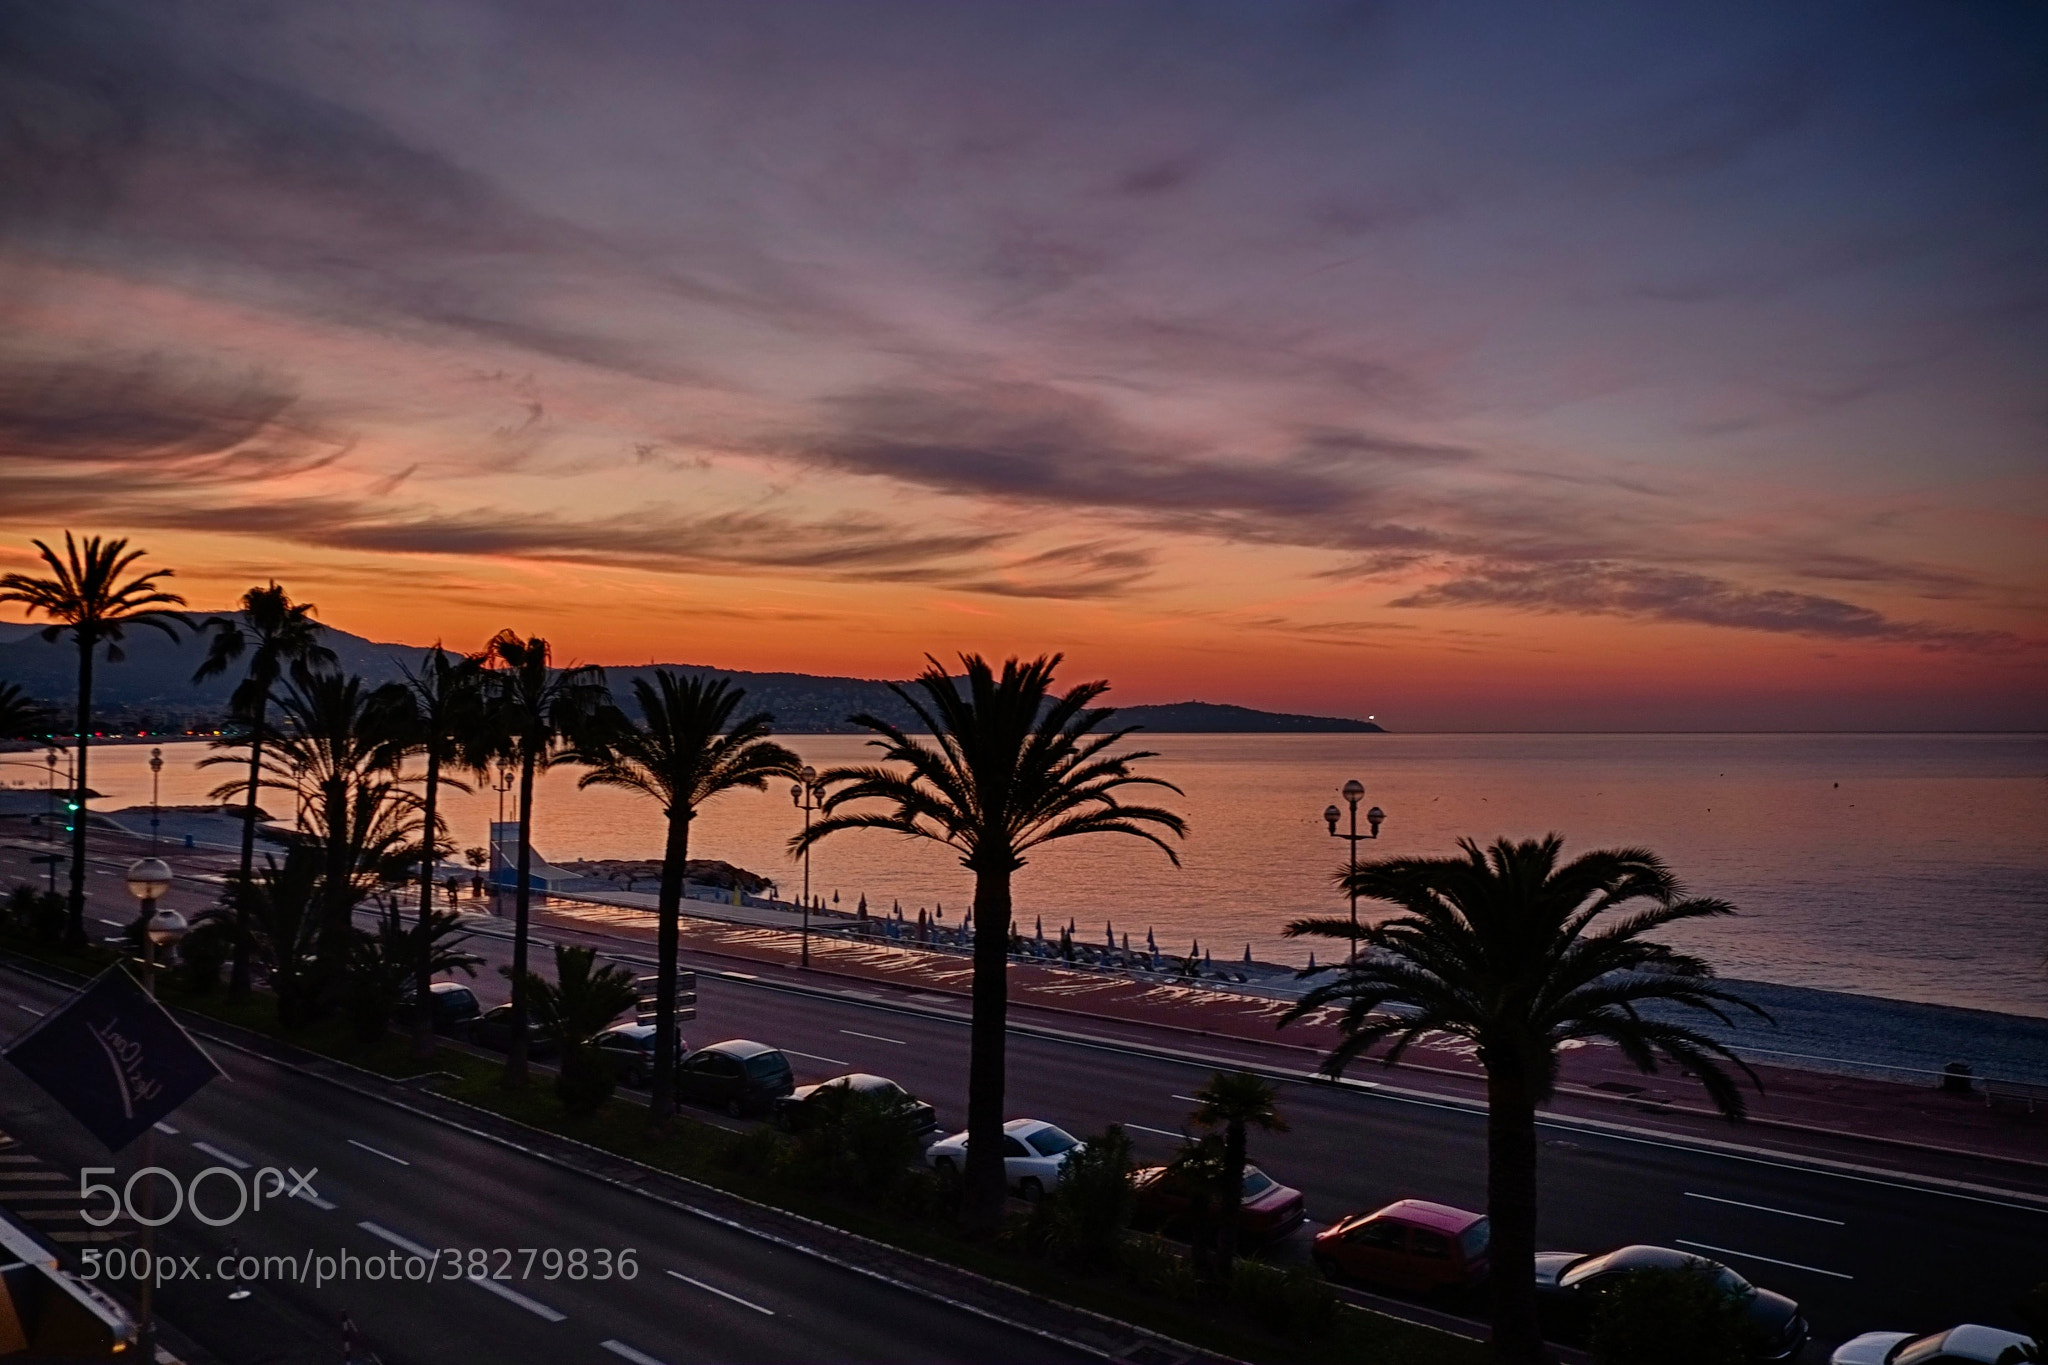 Photograph Good Morning Cote d'Azur by world_image on 500px